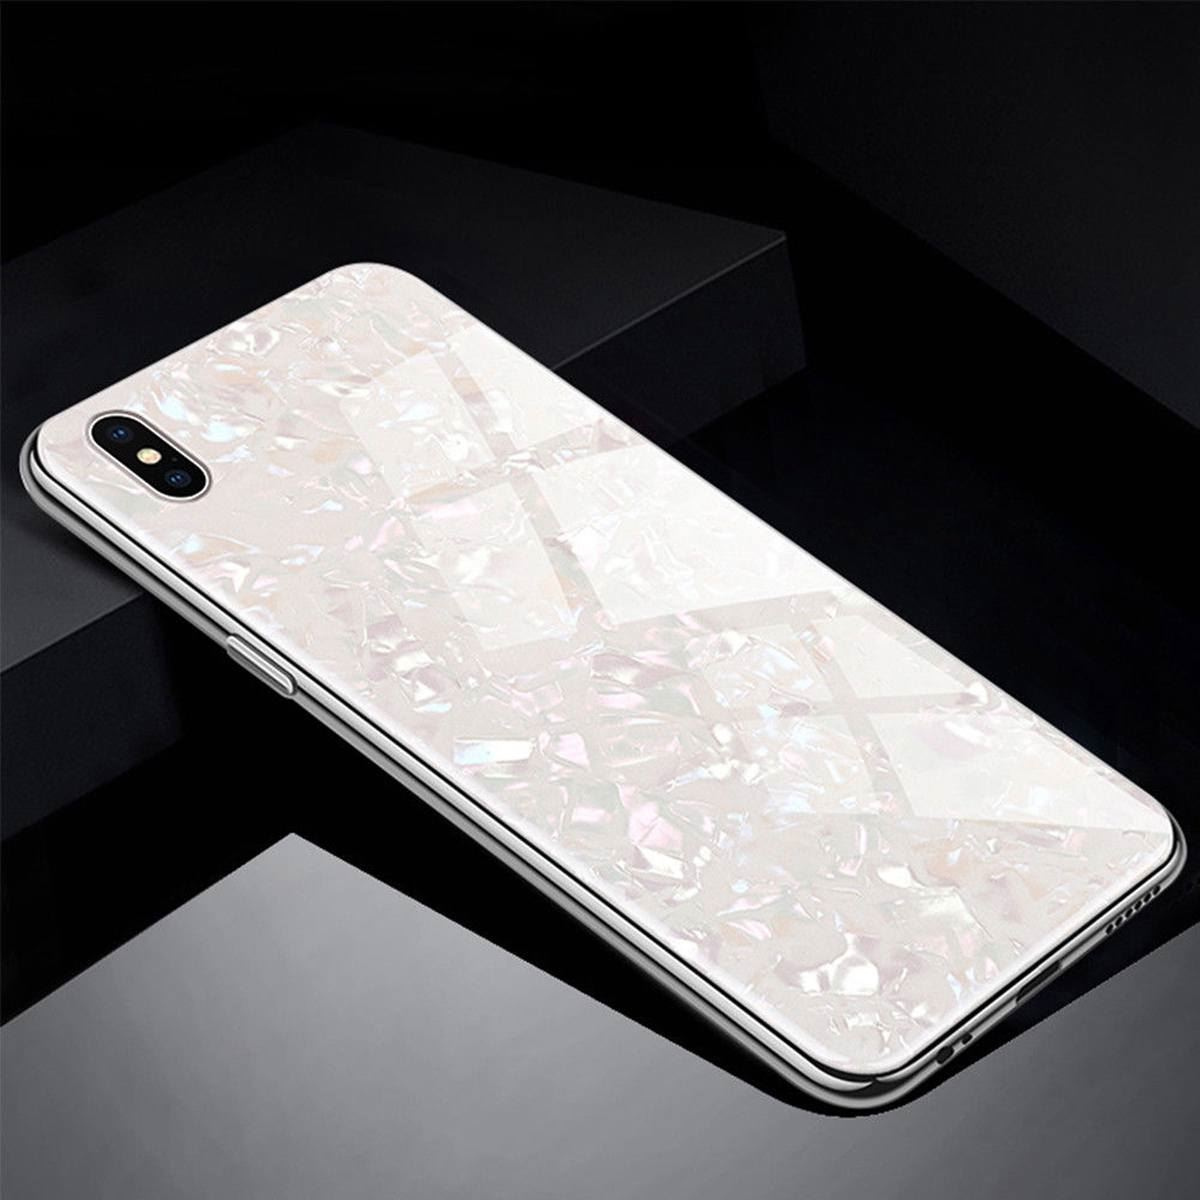 Luxury-Marble-Tempered-Glass-Case-Cover-For-Apple-iPhone-X-XS-XR-Max-10-8-7-6s-6 thumbnail 72